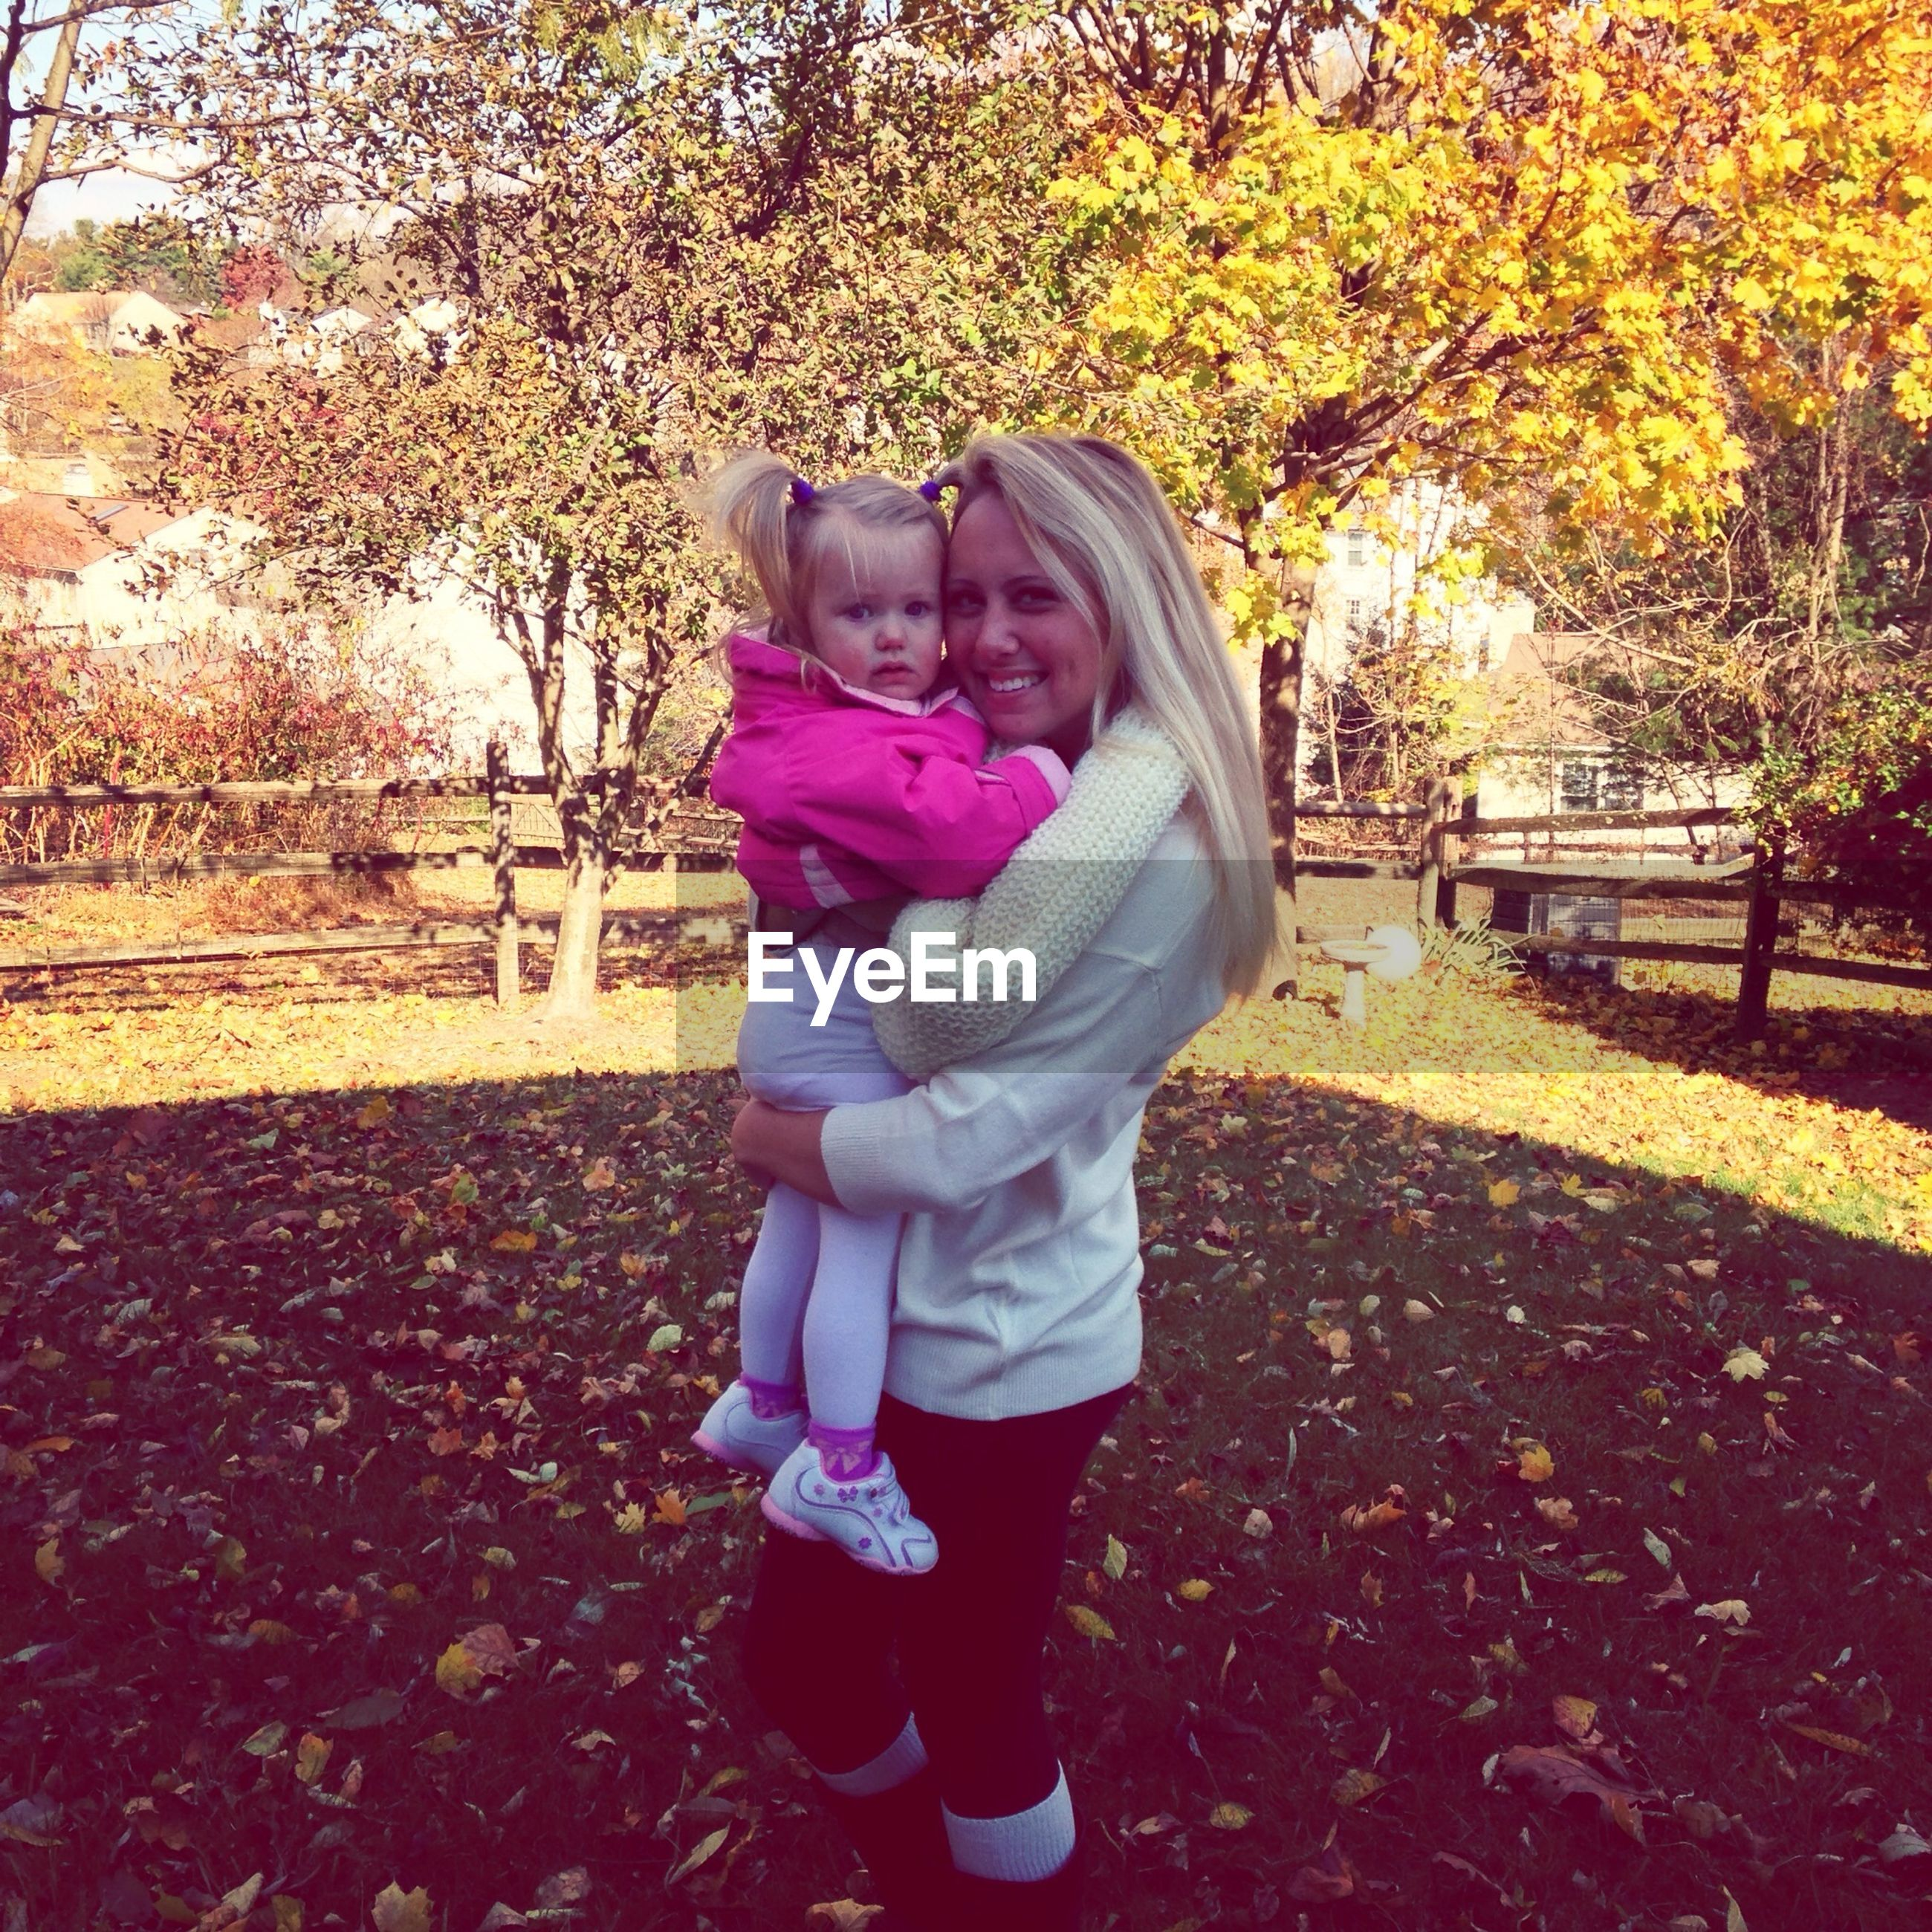 lifestyles, childhood, full length, casual clothing, leisure activity, elementary age, park - man made space, girls, autumn, standing, season, street, rear view, tree, innocence, boys, person, outdoors